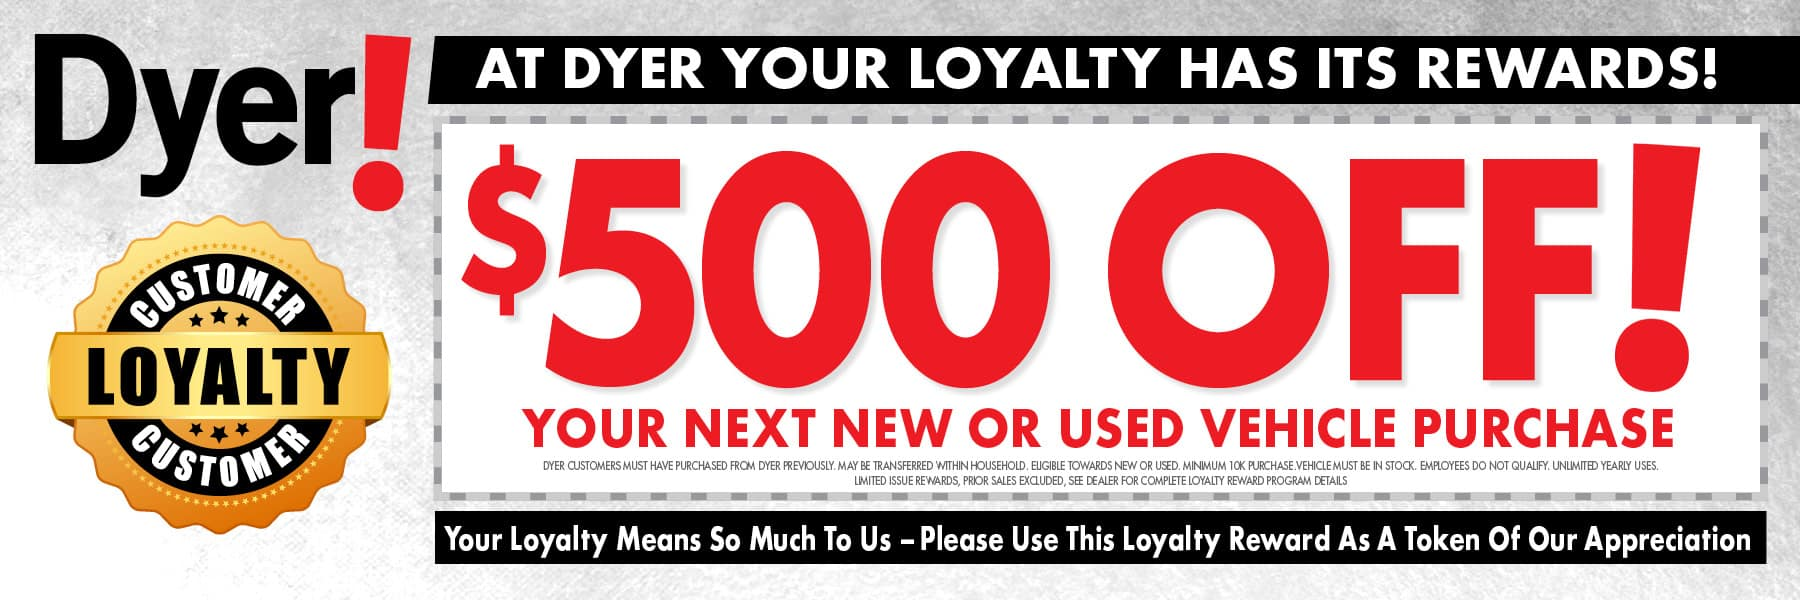 AD0549 DYER – HERO 1800X600- Loyalty (1)